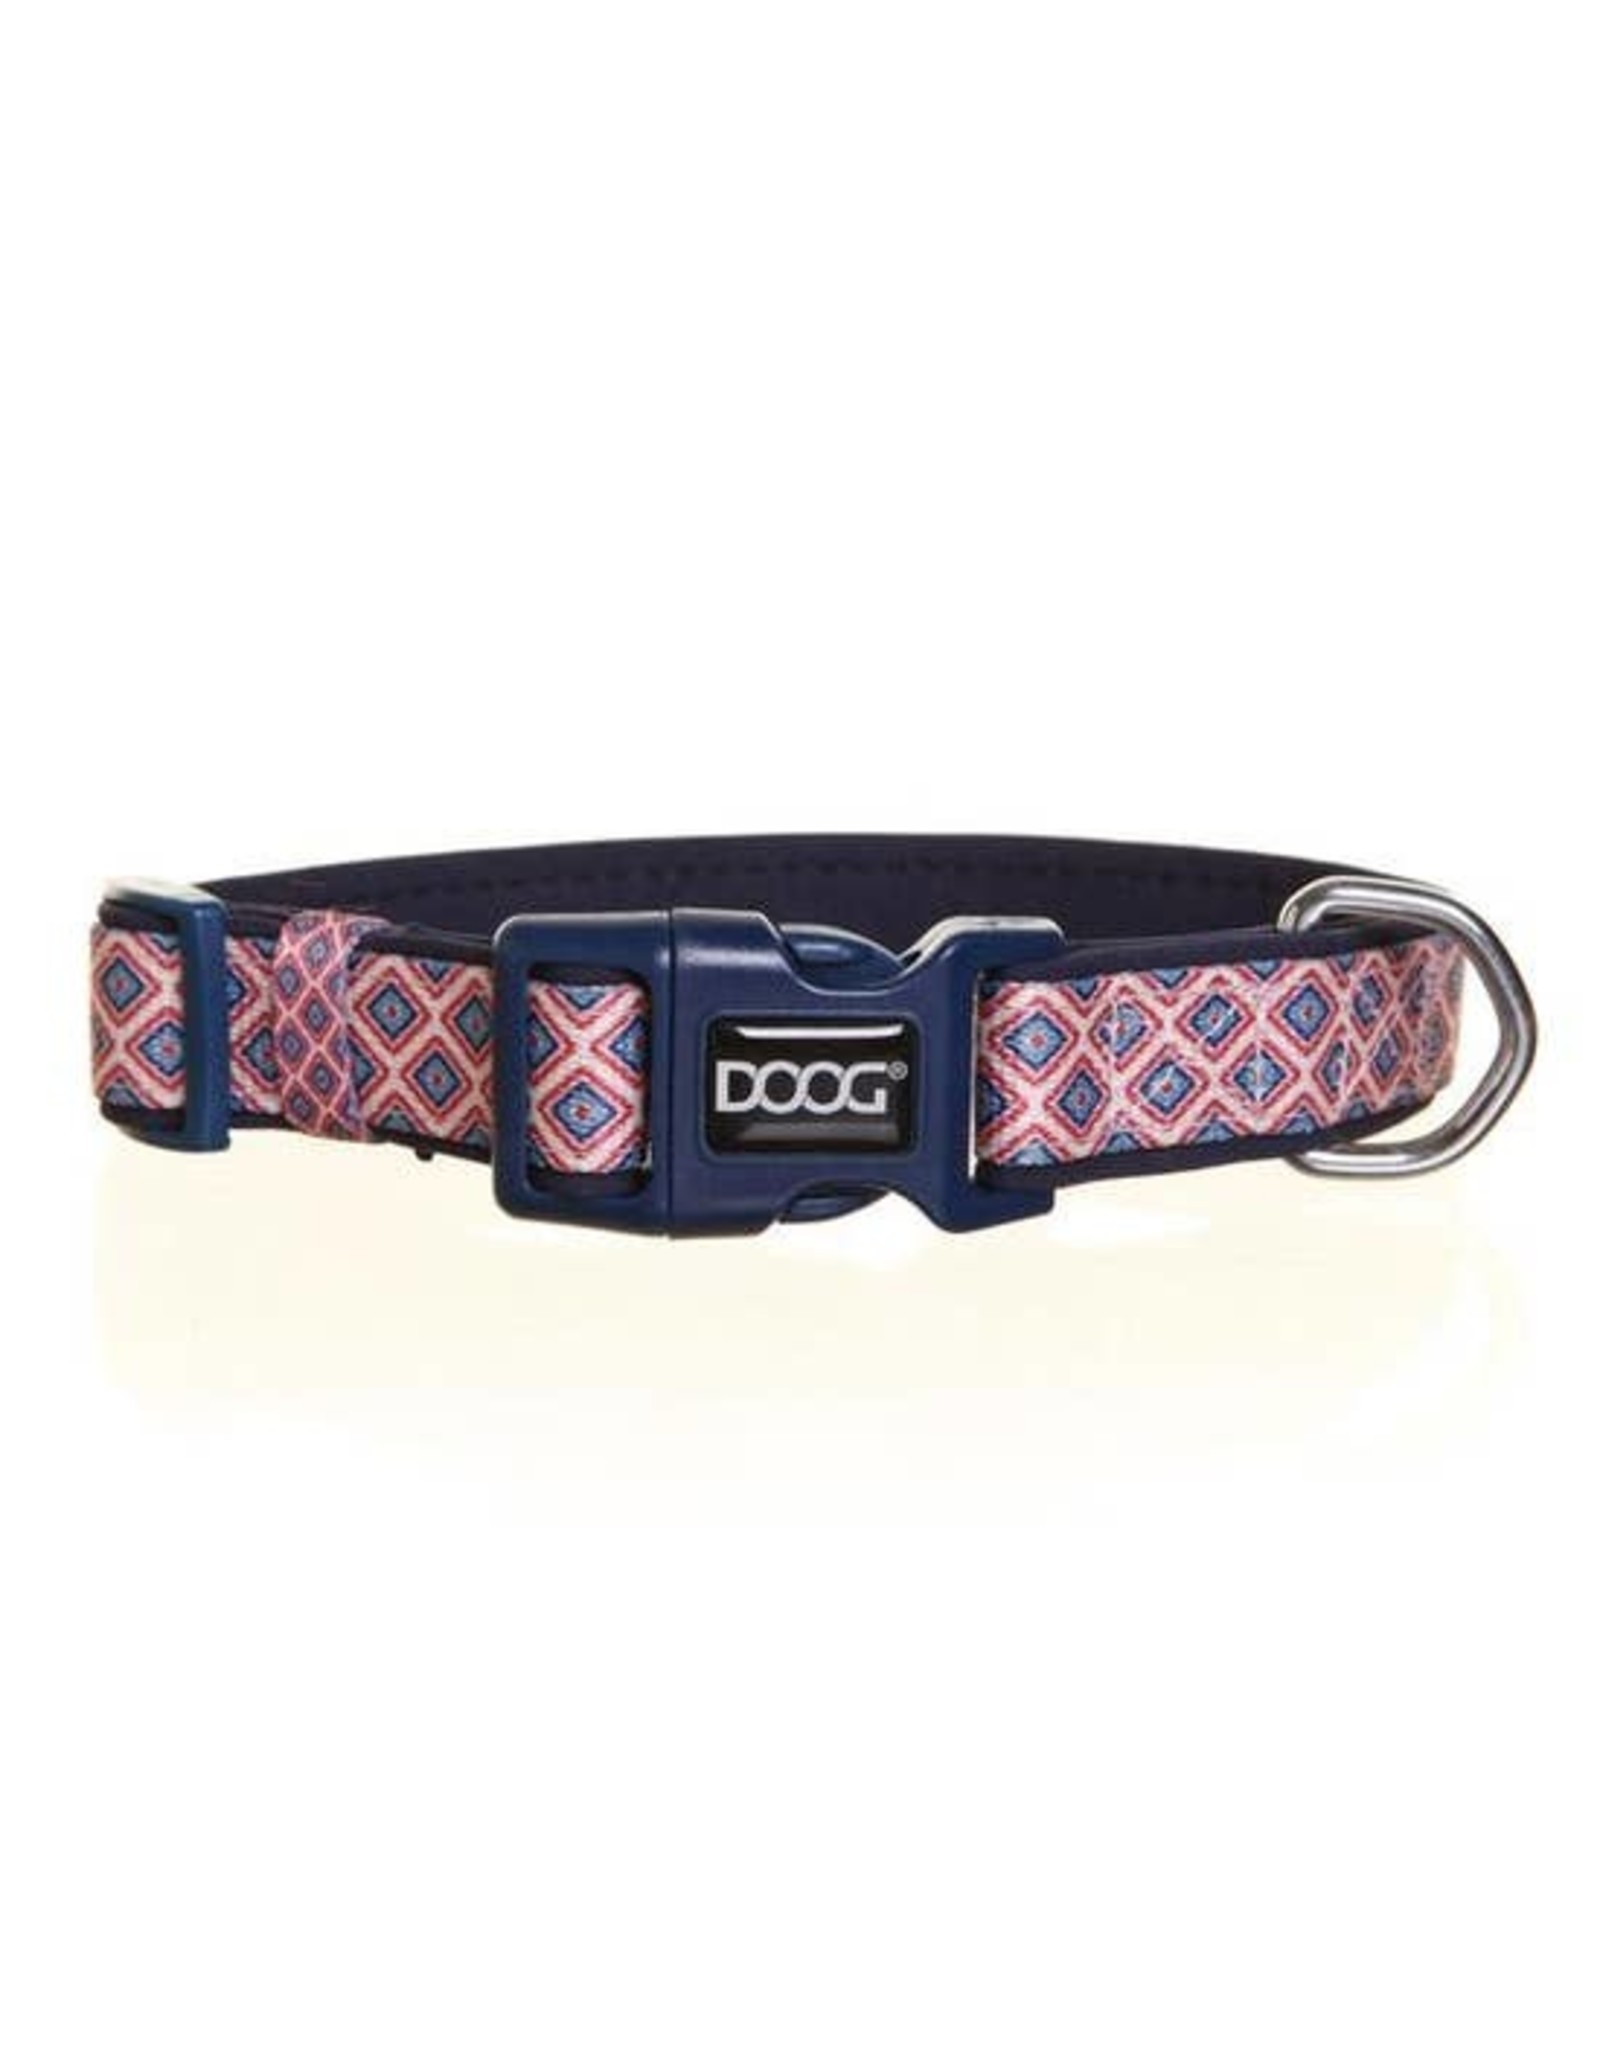 DOOG INC NEOPRENE DOG COLLAR -GROMIT M